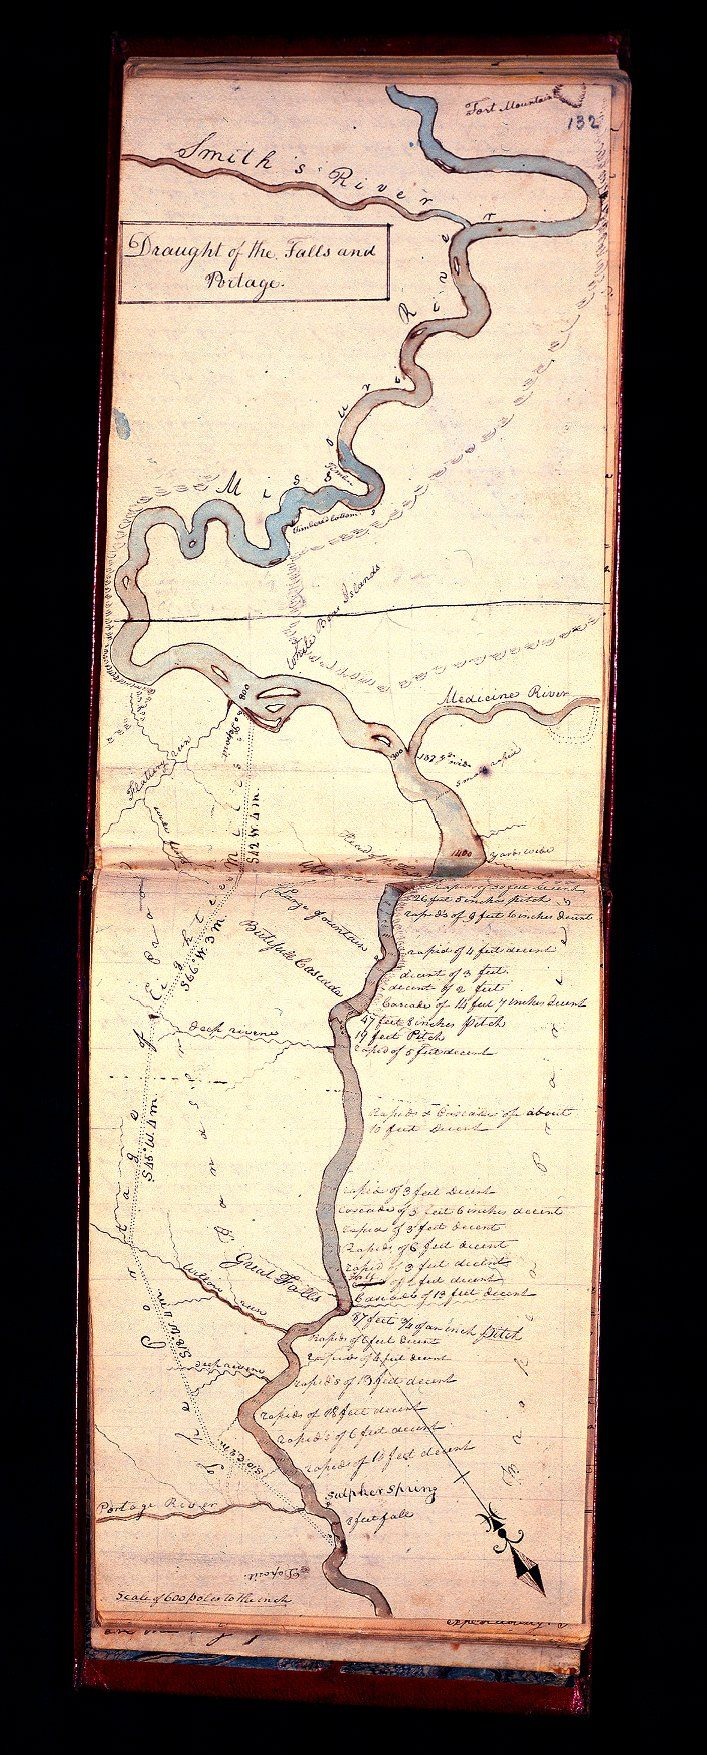 Best Images About  Book On Pinterest The Western The - Map of the united states before lewis and clark